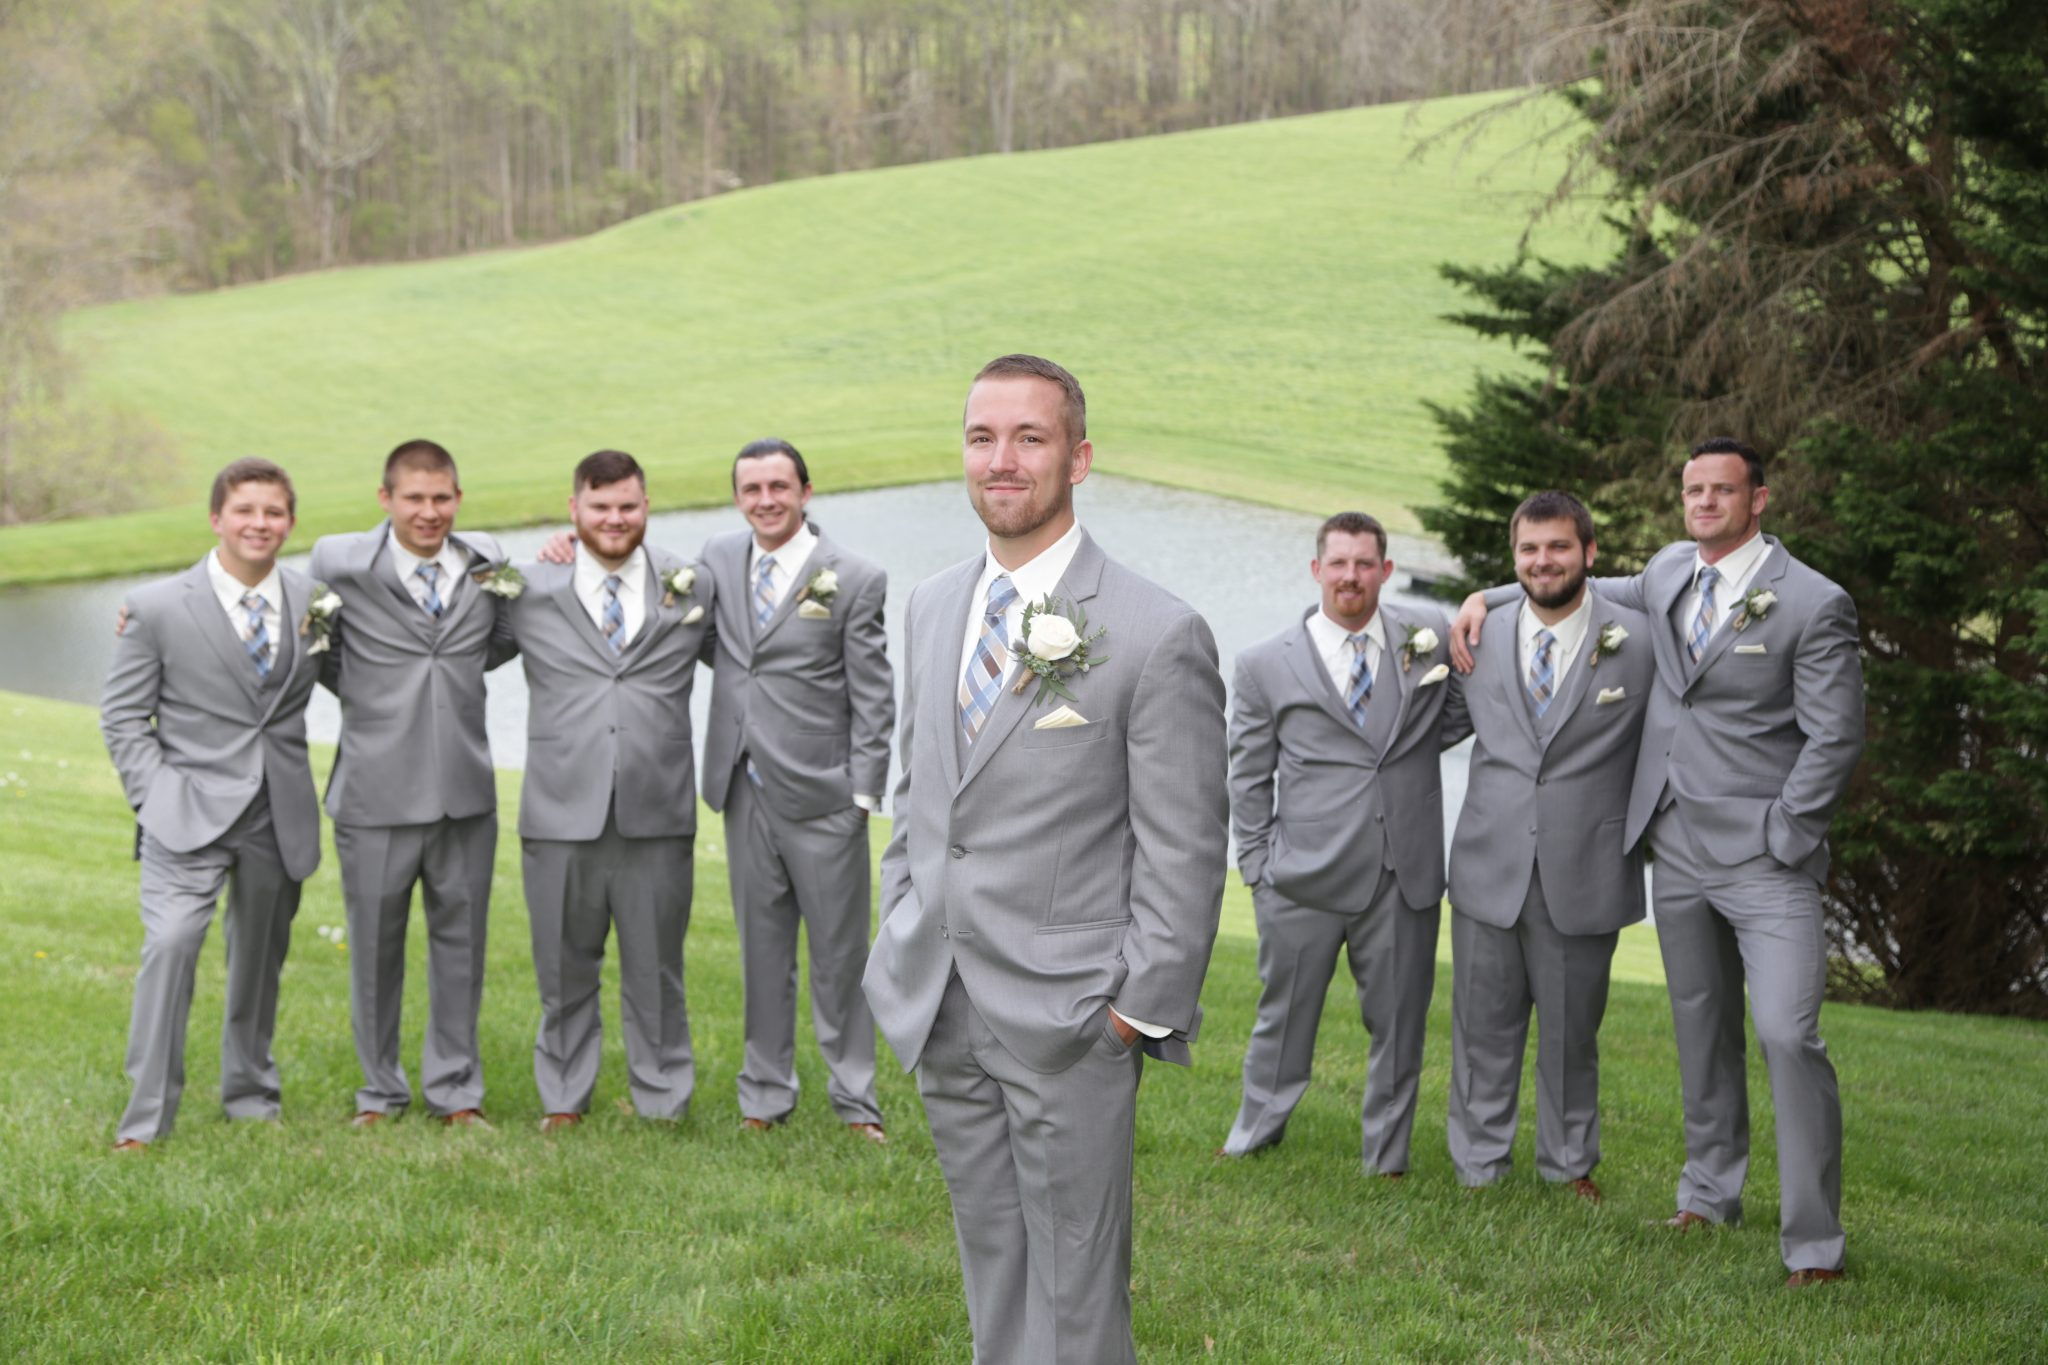 Groom and groomsmen pose on back lawn at Morningside Inn private estate wedding venue